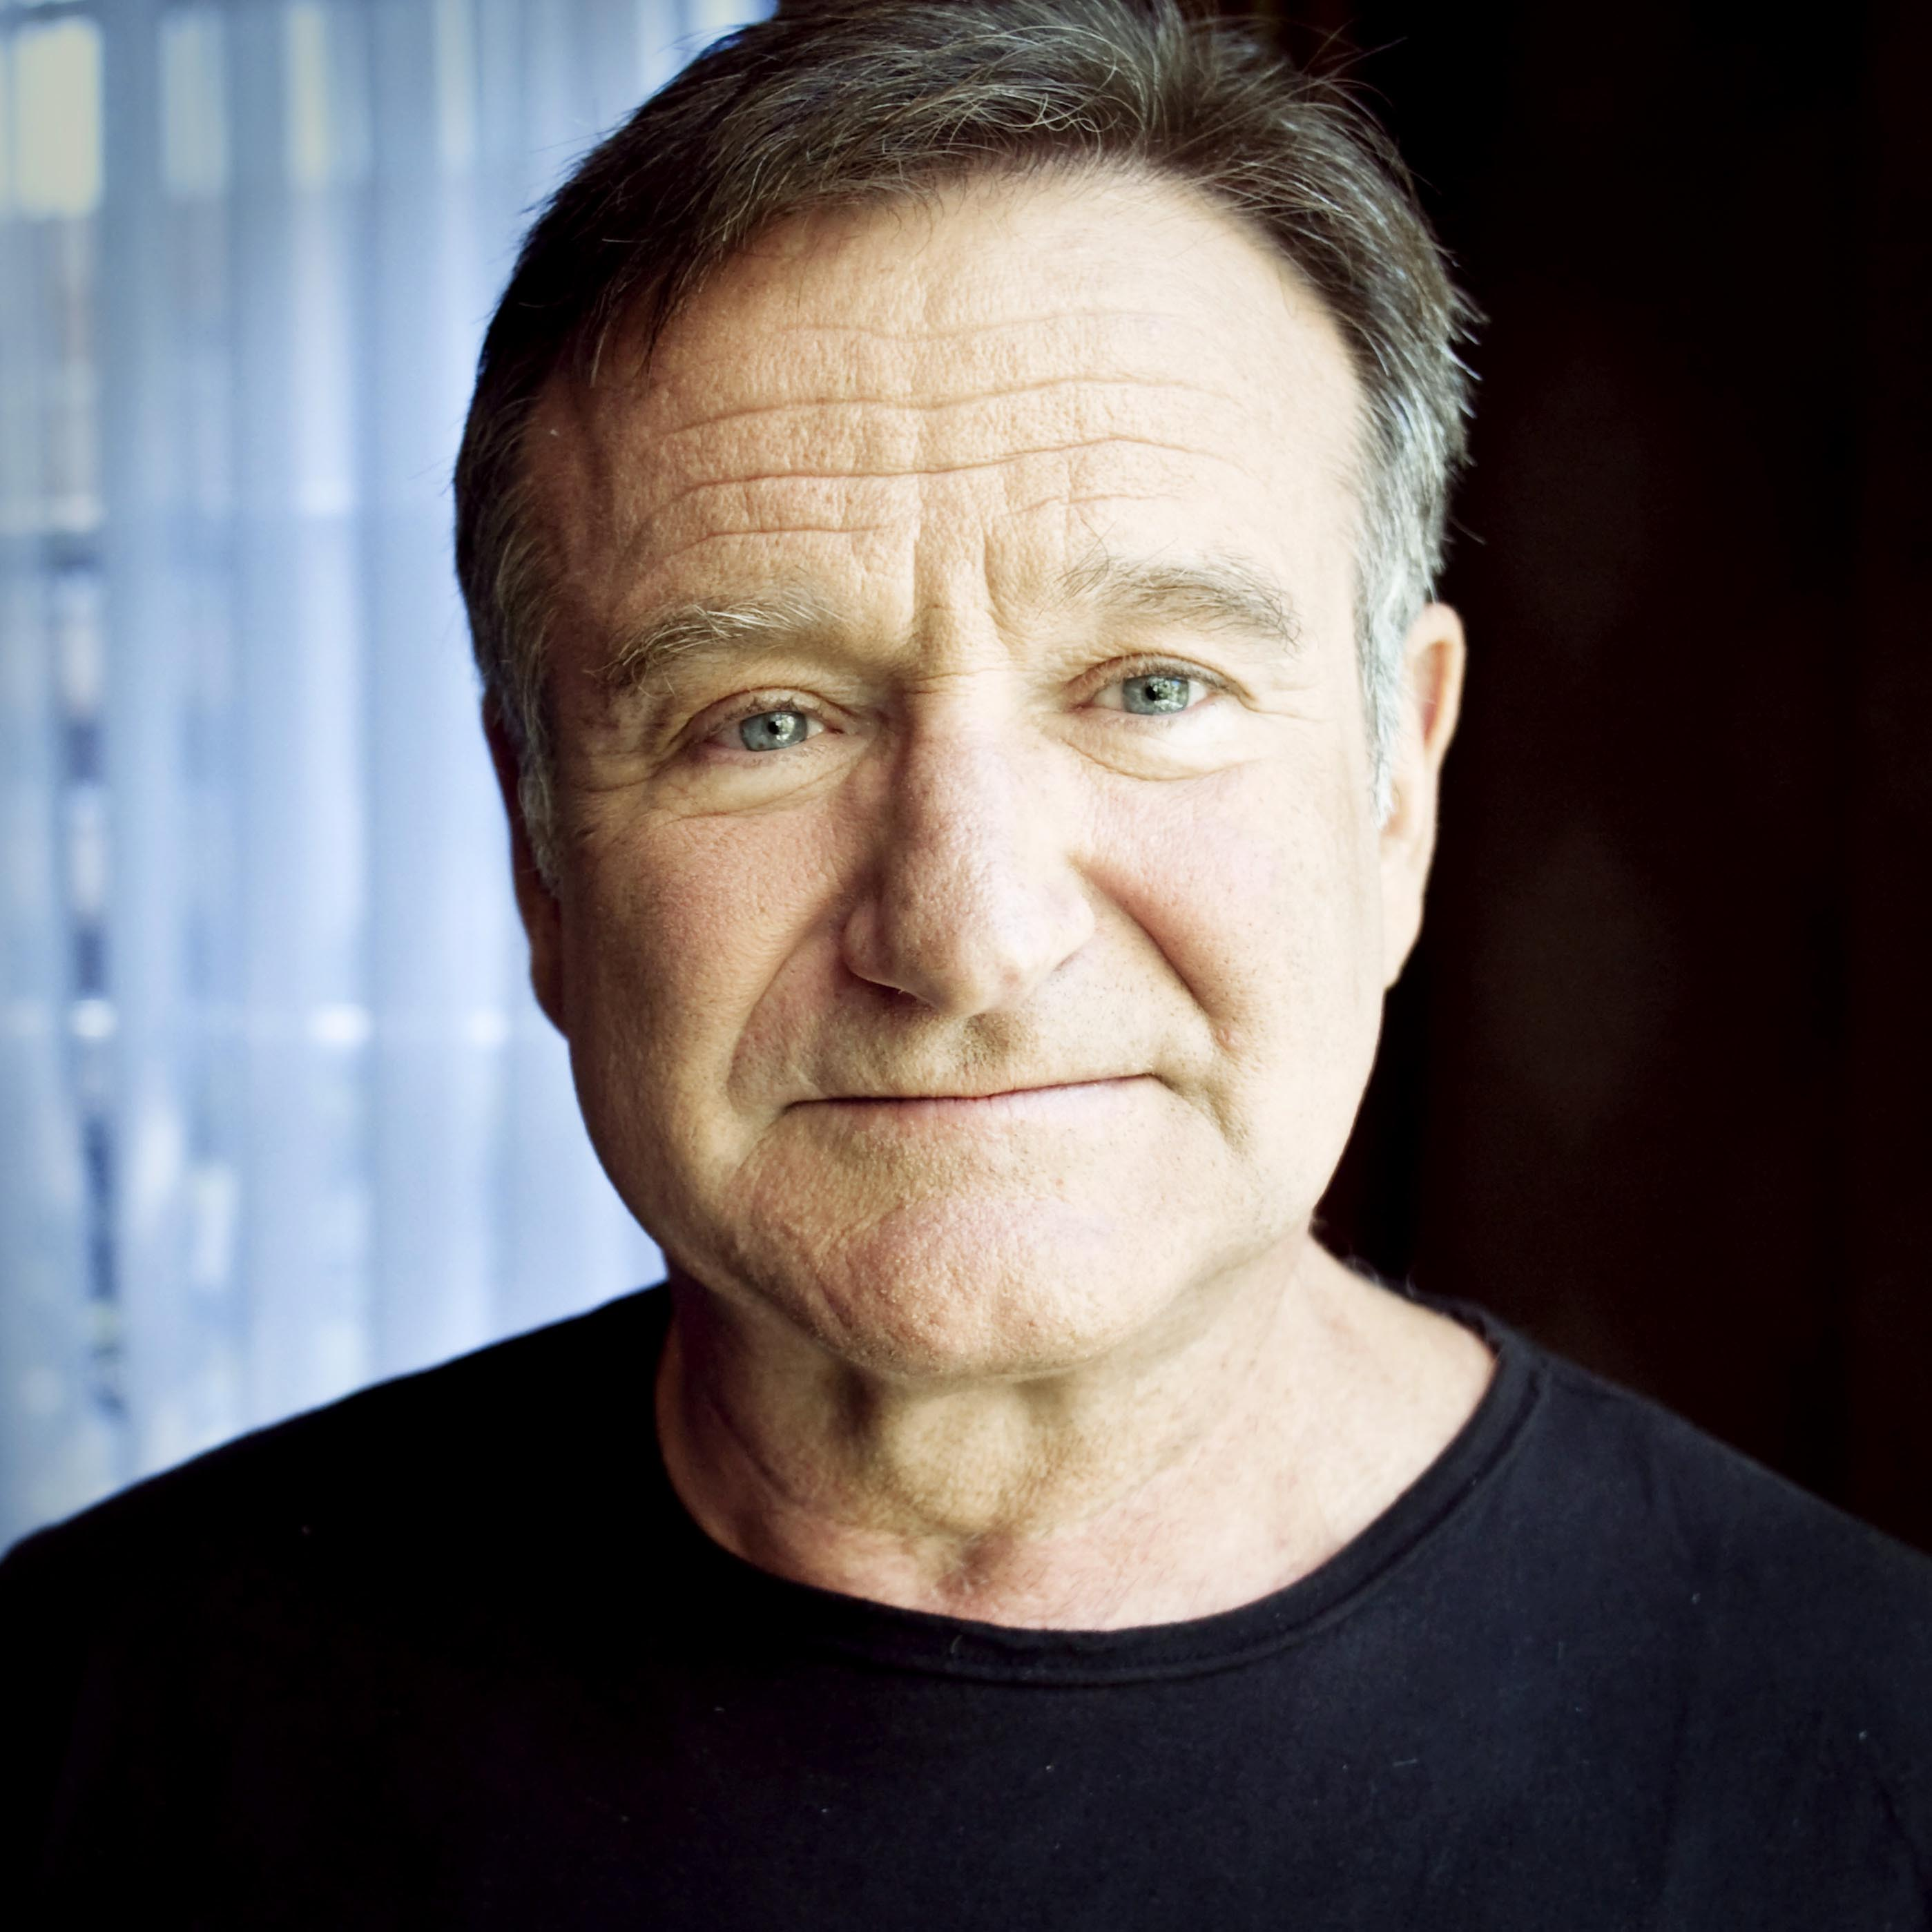 ROBIN WILLIAMS - ROBIN WILLIAMS Photo (32089778) - Fanpop